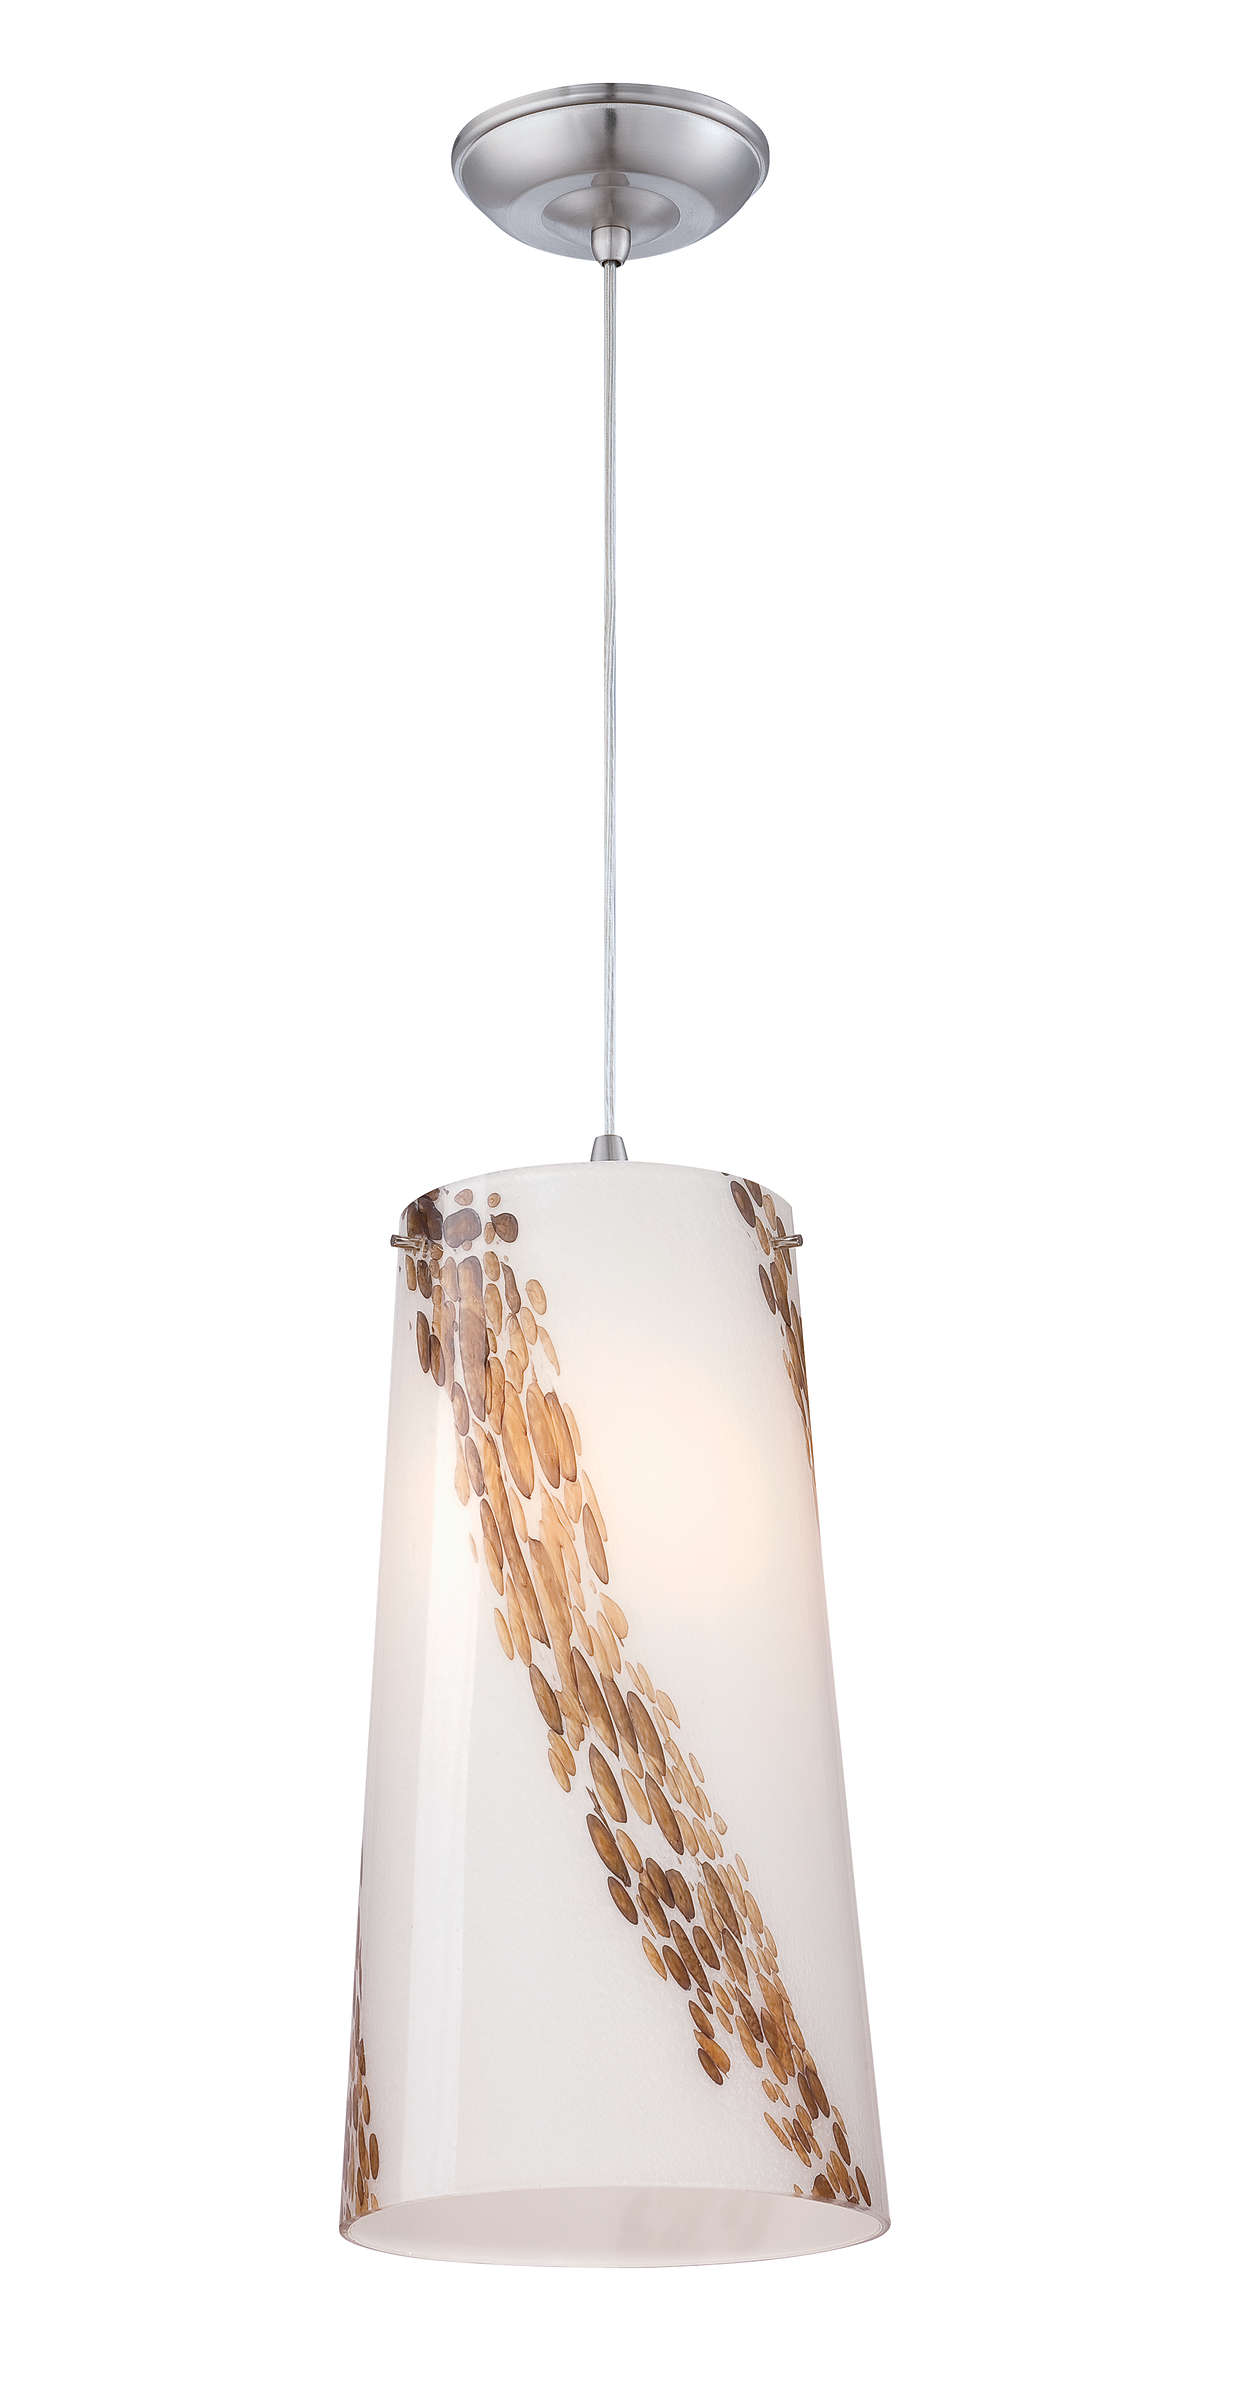 Piave large 1-light pendant